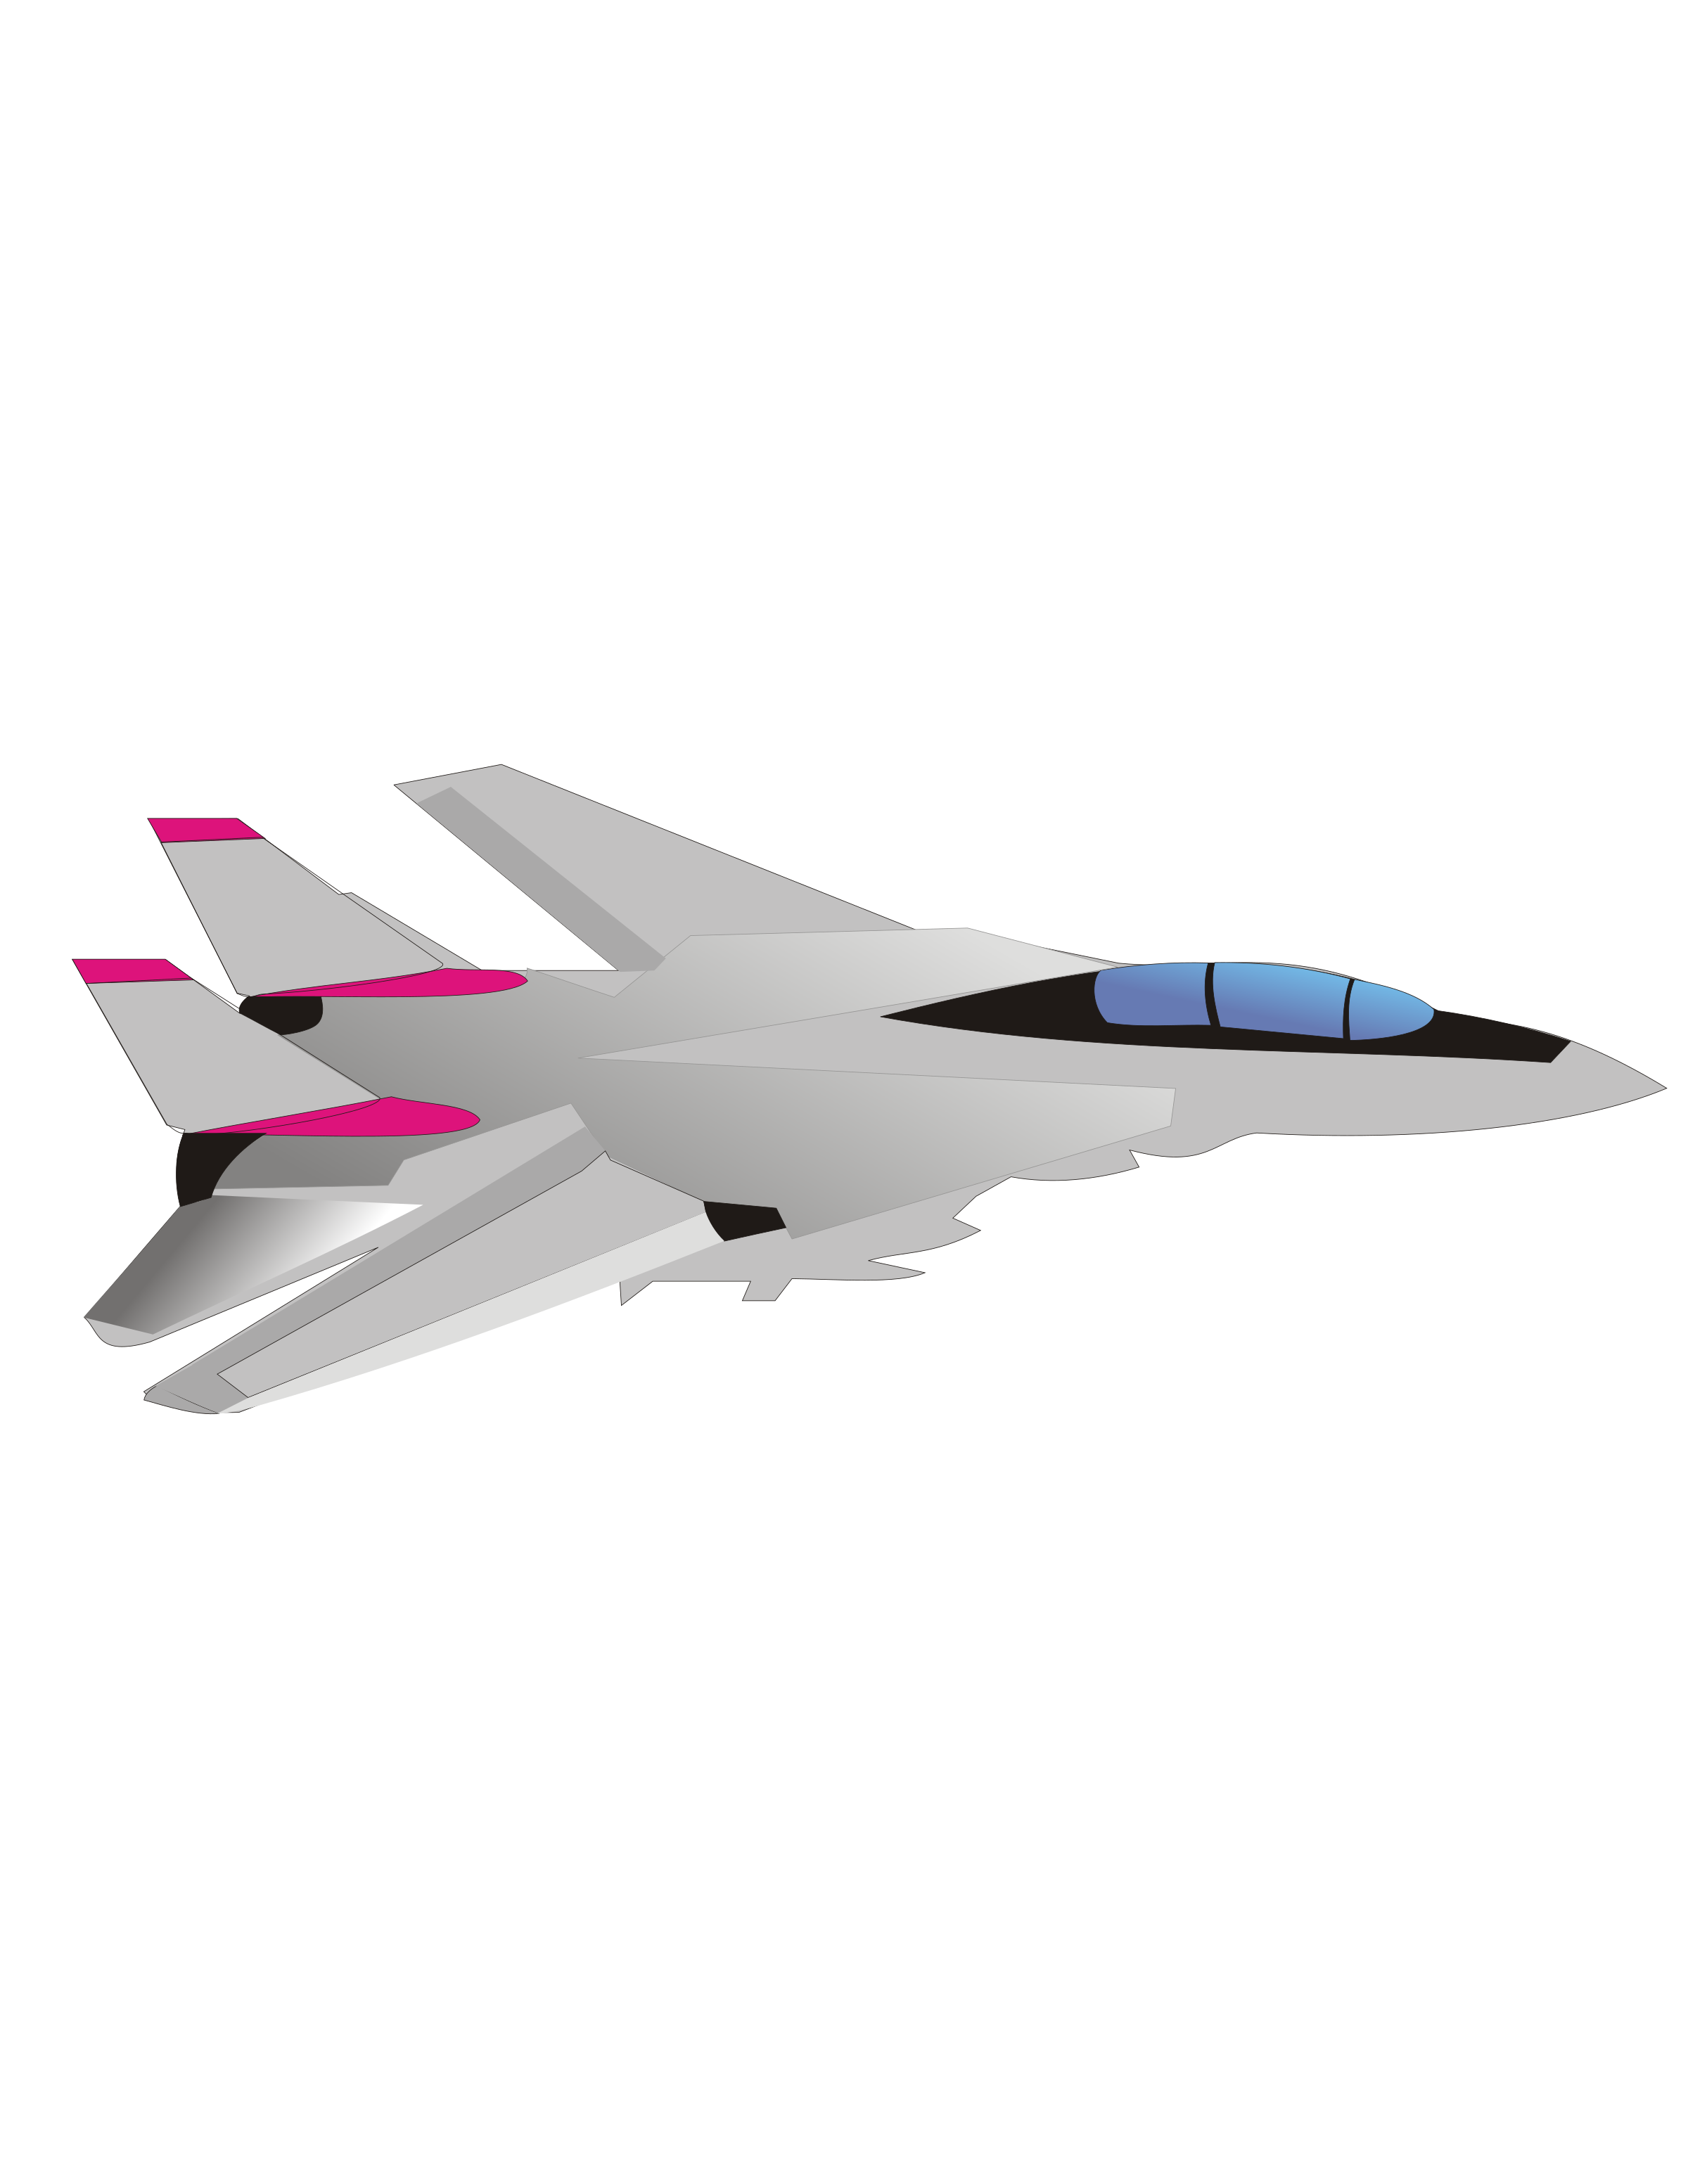 Plane svg animated. Fighter clipart aeroplane cute